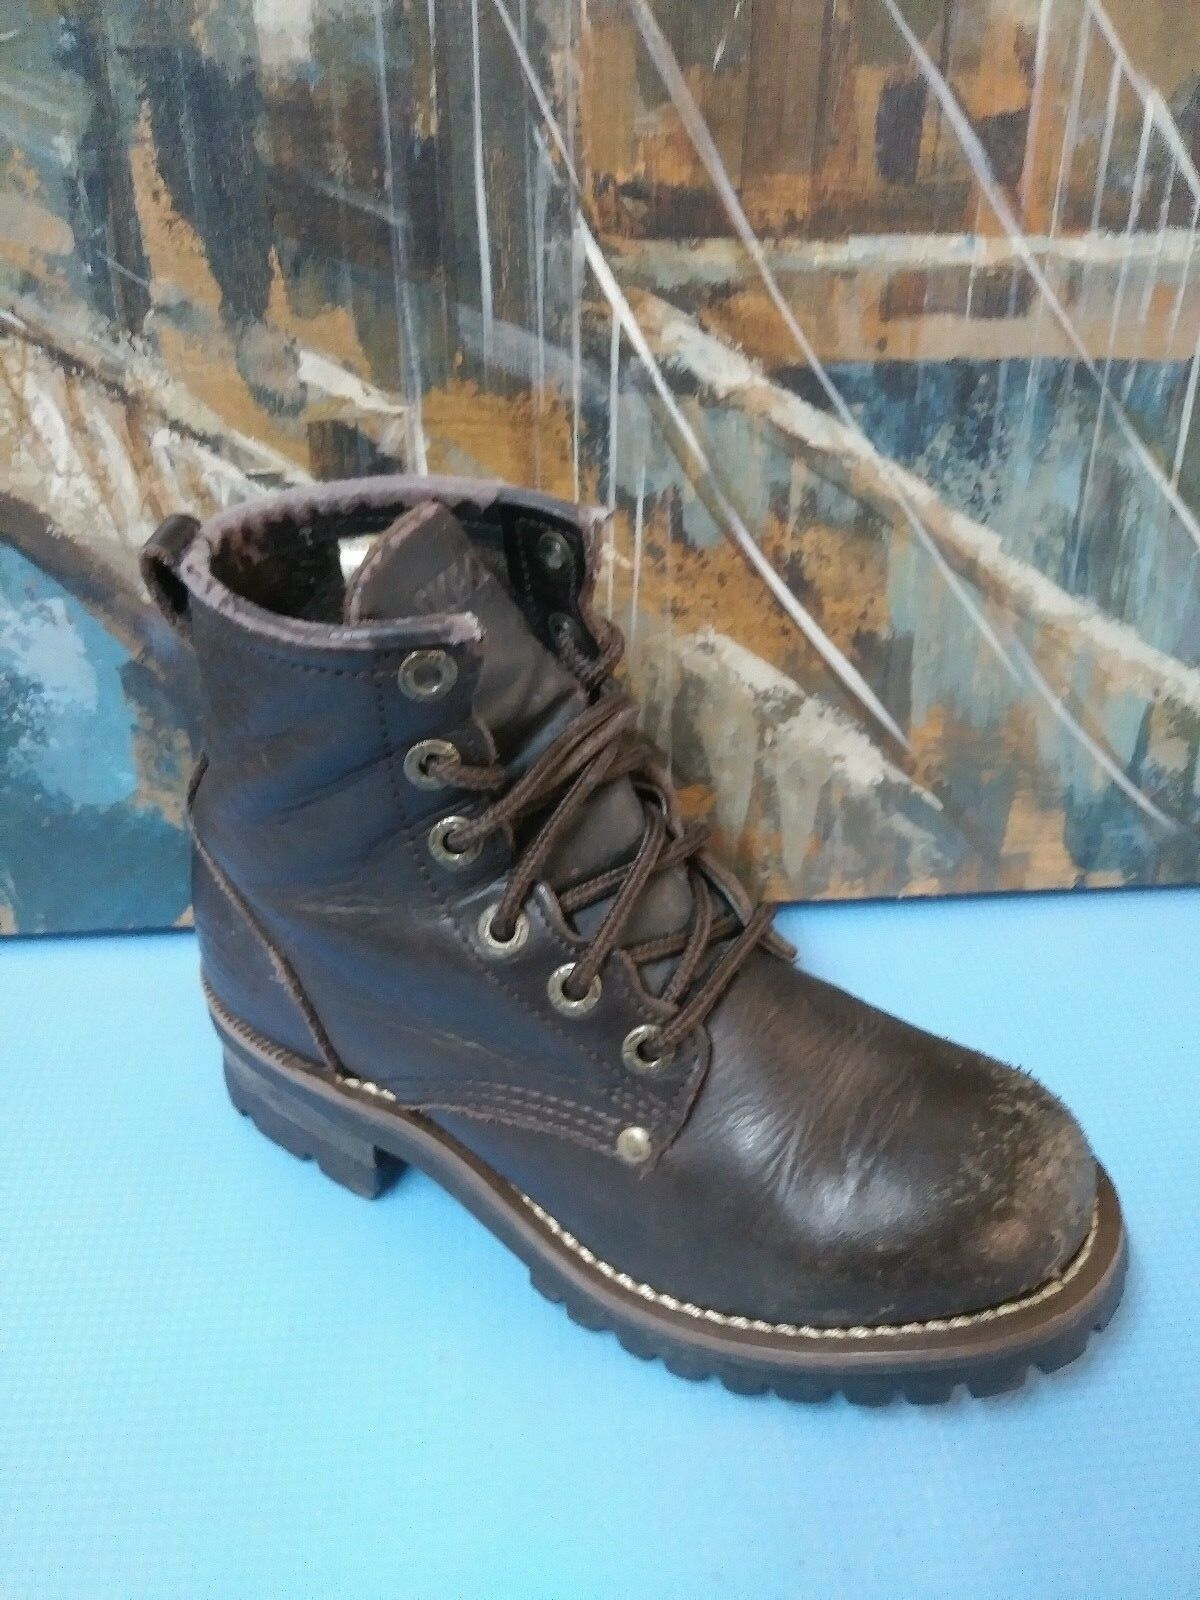 Skechers Womens Brown Leather Lace Up Logger Work Boots SZ 6.5